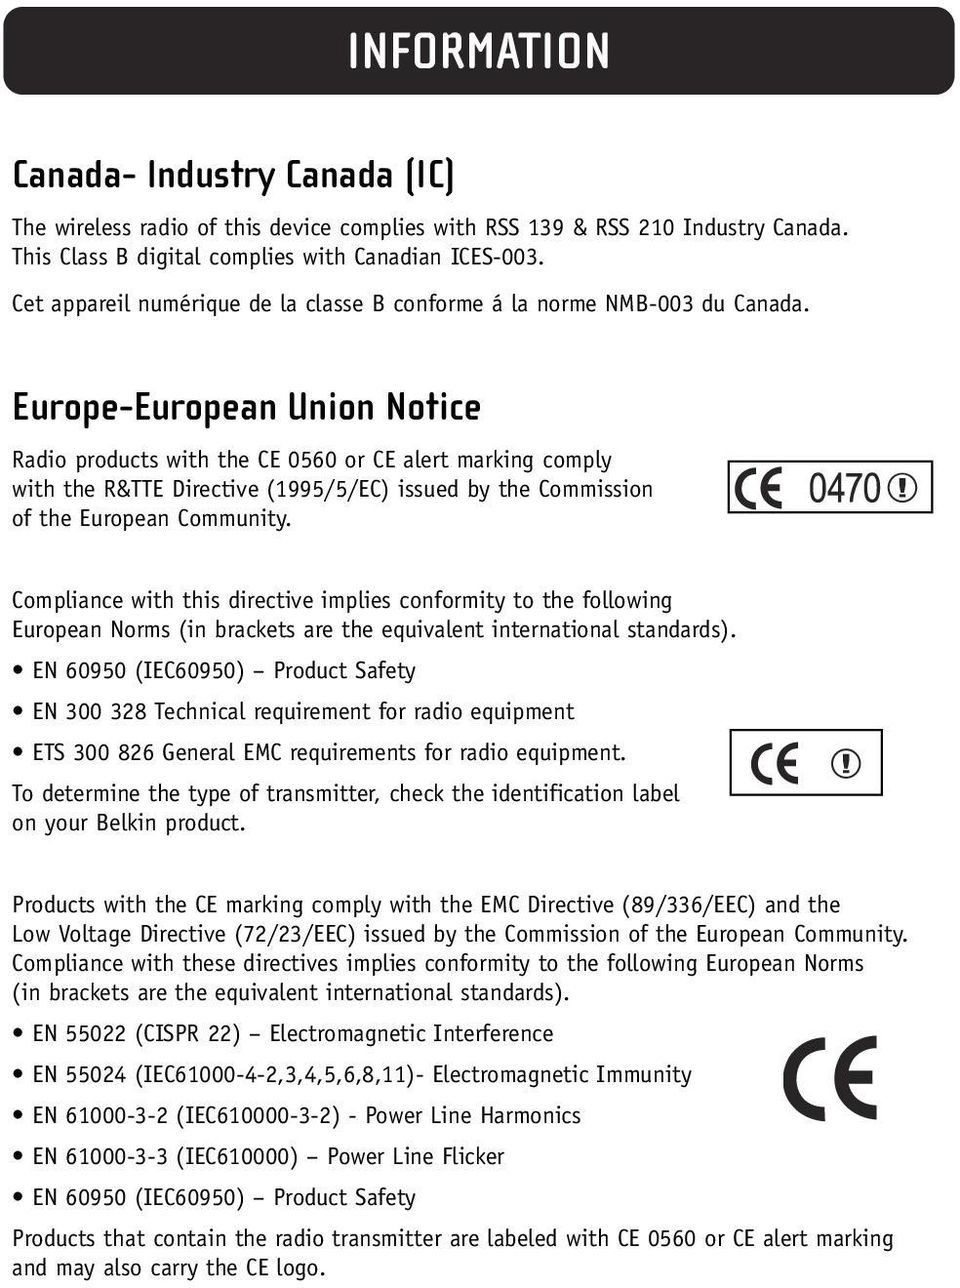 Europe-European Union Notice Radio products with the CE 0560 or CE alert marking comply with the R&TTE Directive (1995/5/EC) issued by the Commission of the European Community.